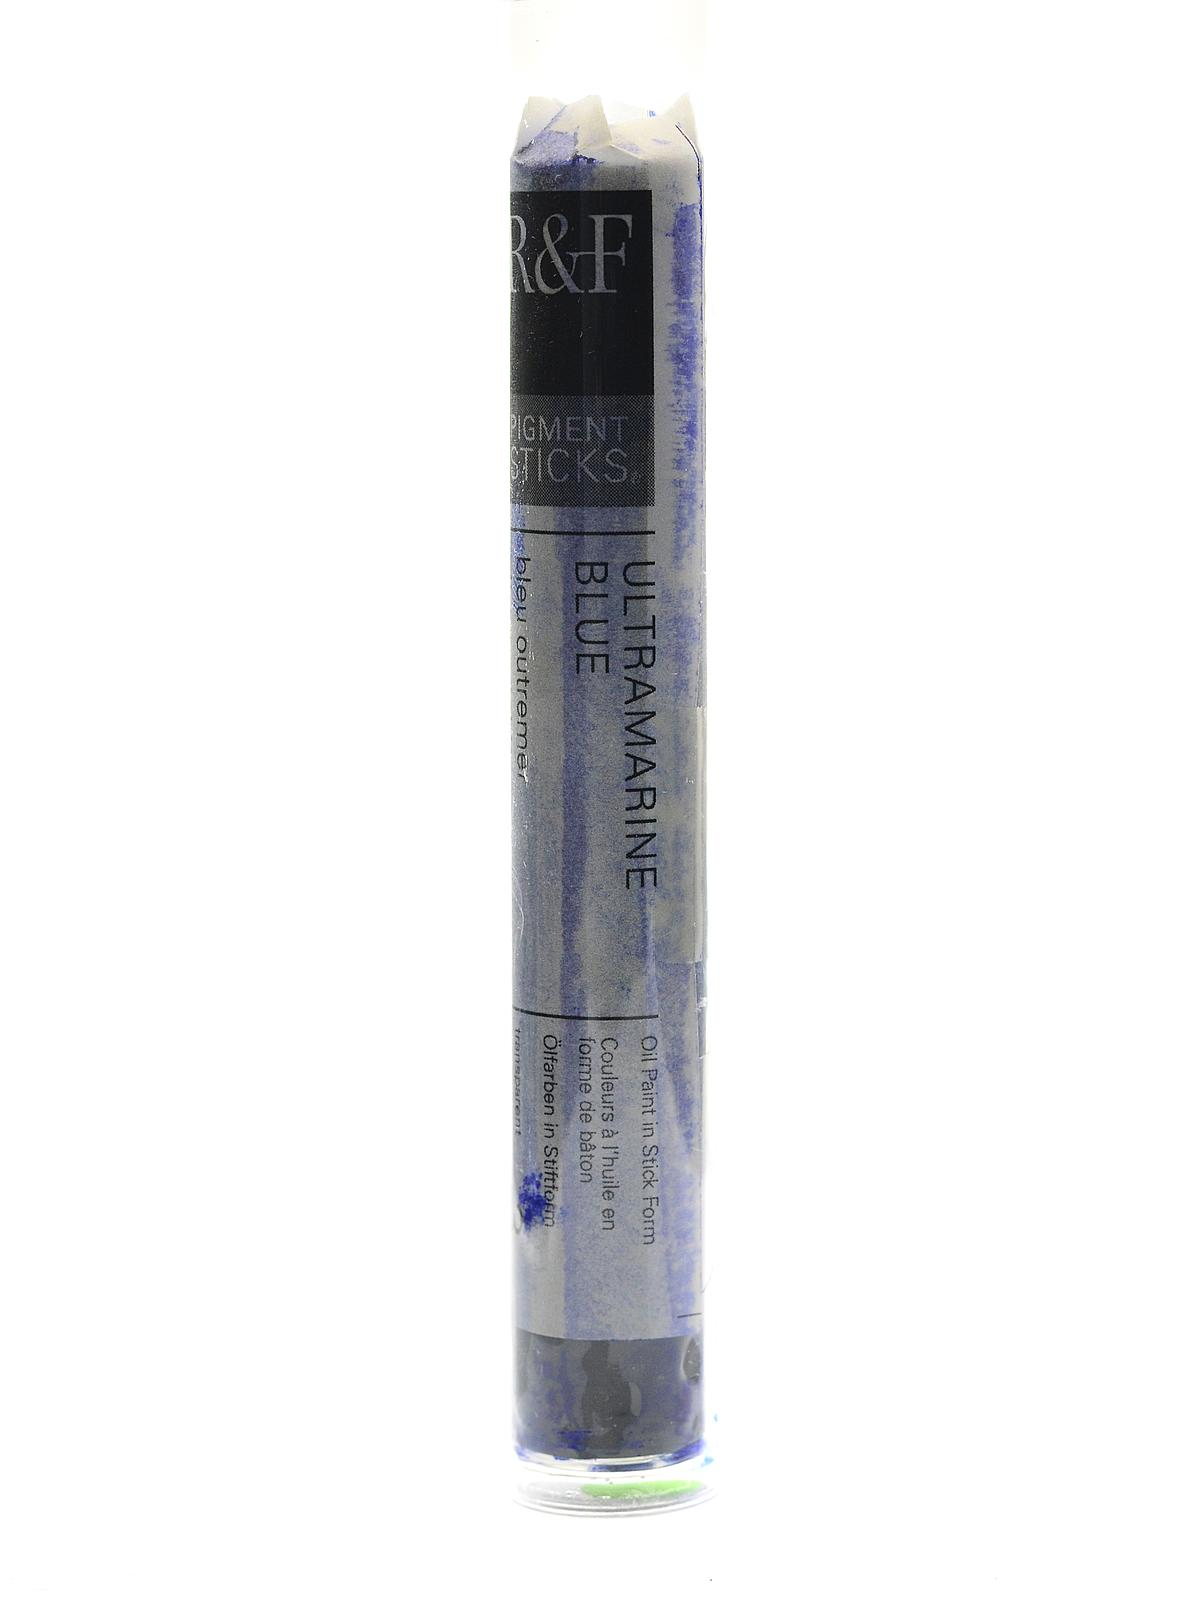 Pigment_Sticks_ultramarine_blue_38_ml